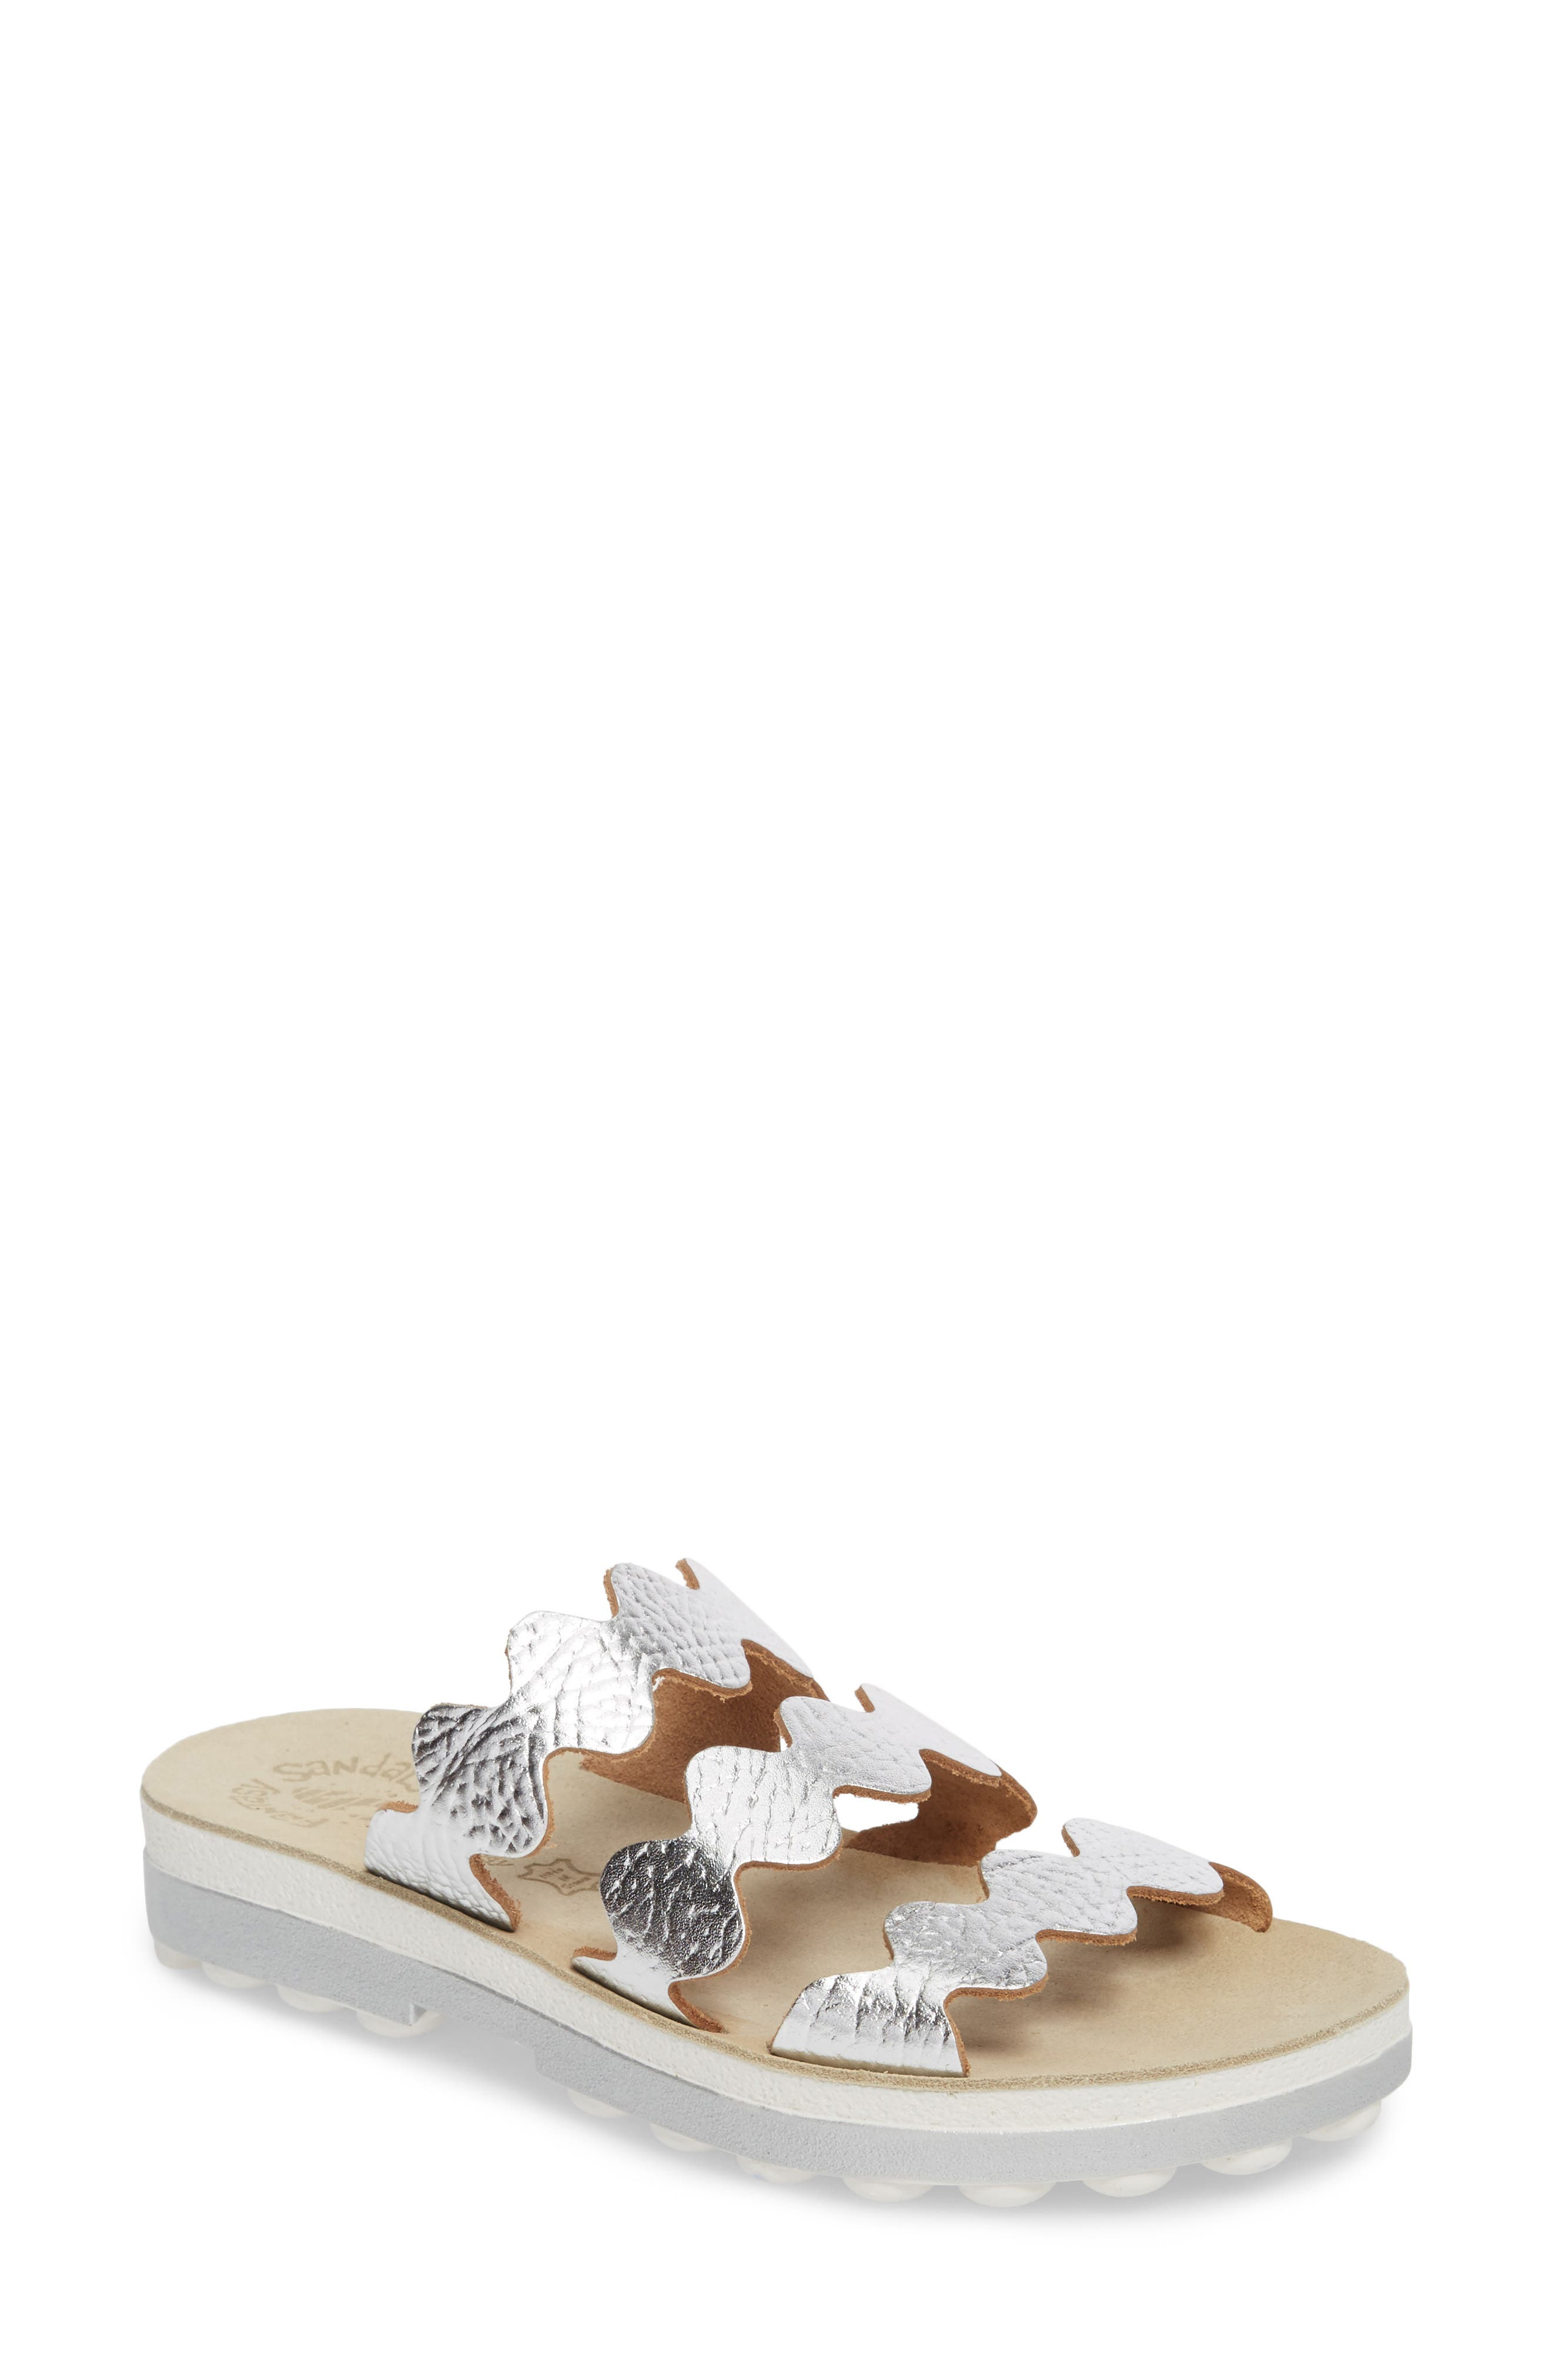 Waves Slide Sandal,                             Main thumbnail 1, color,                             SILVER VOLCANO LEATHER